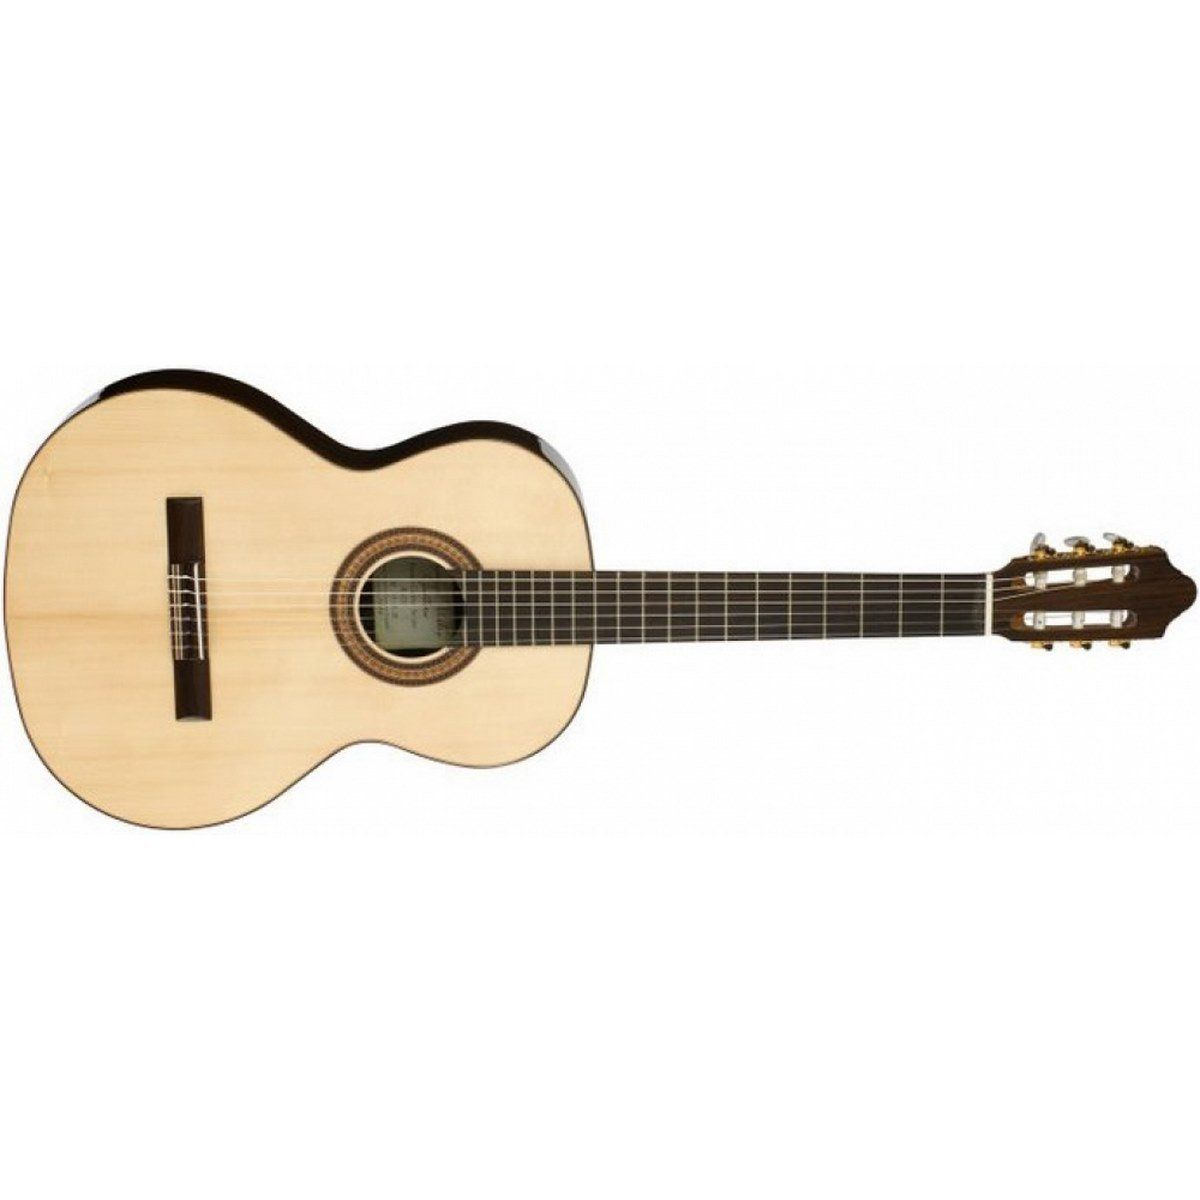 Pin On Classical And Nylon String Guitars